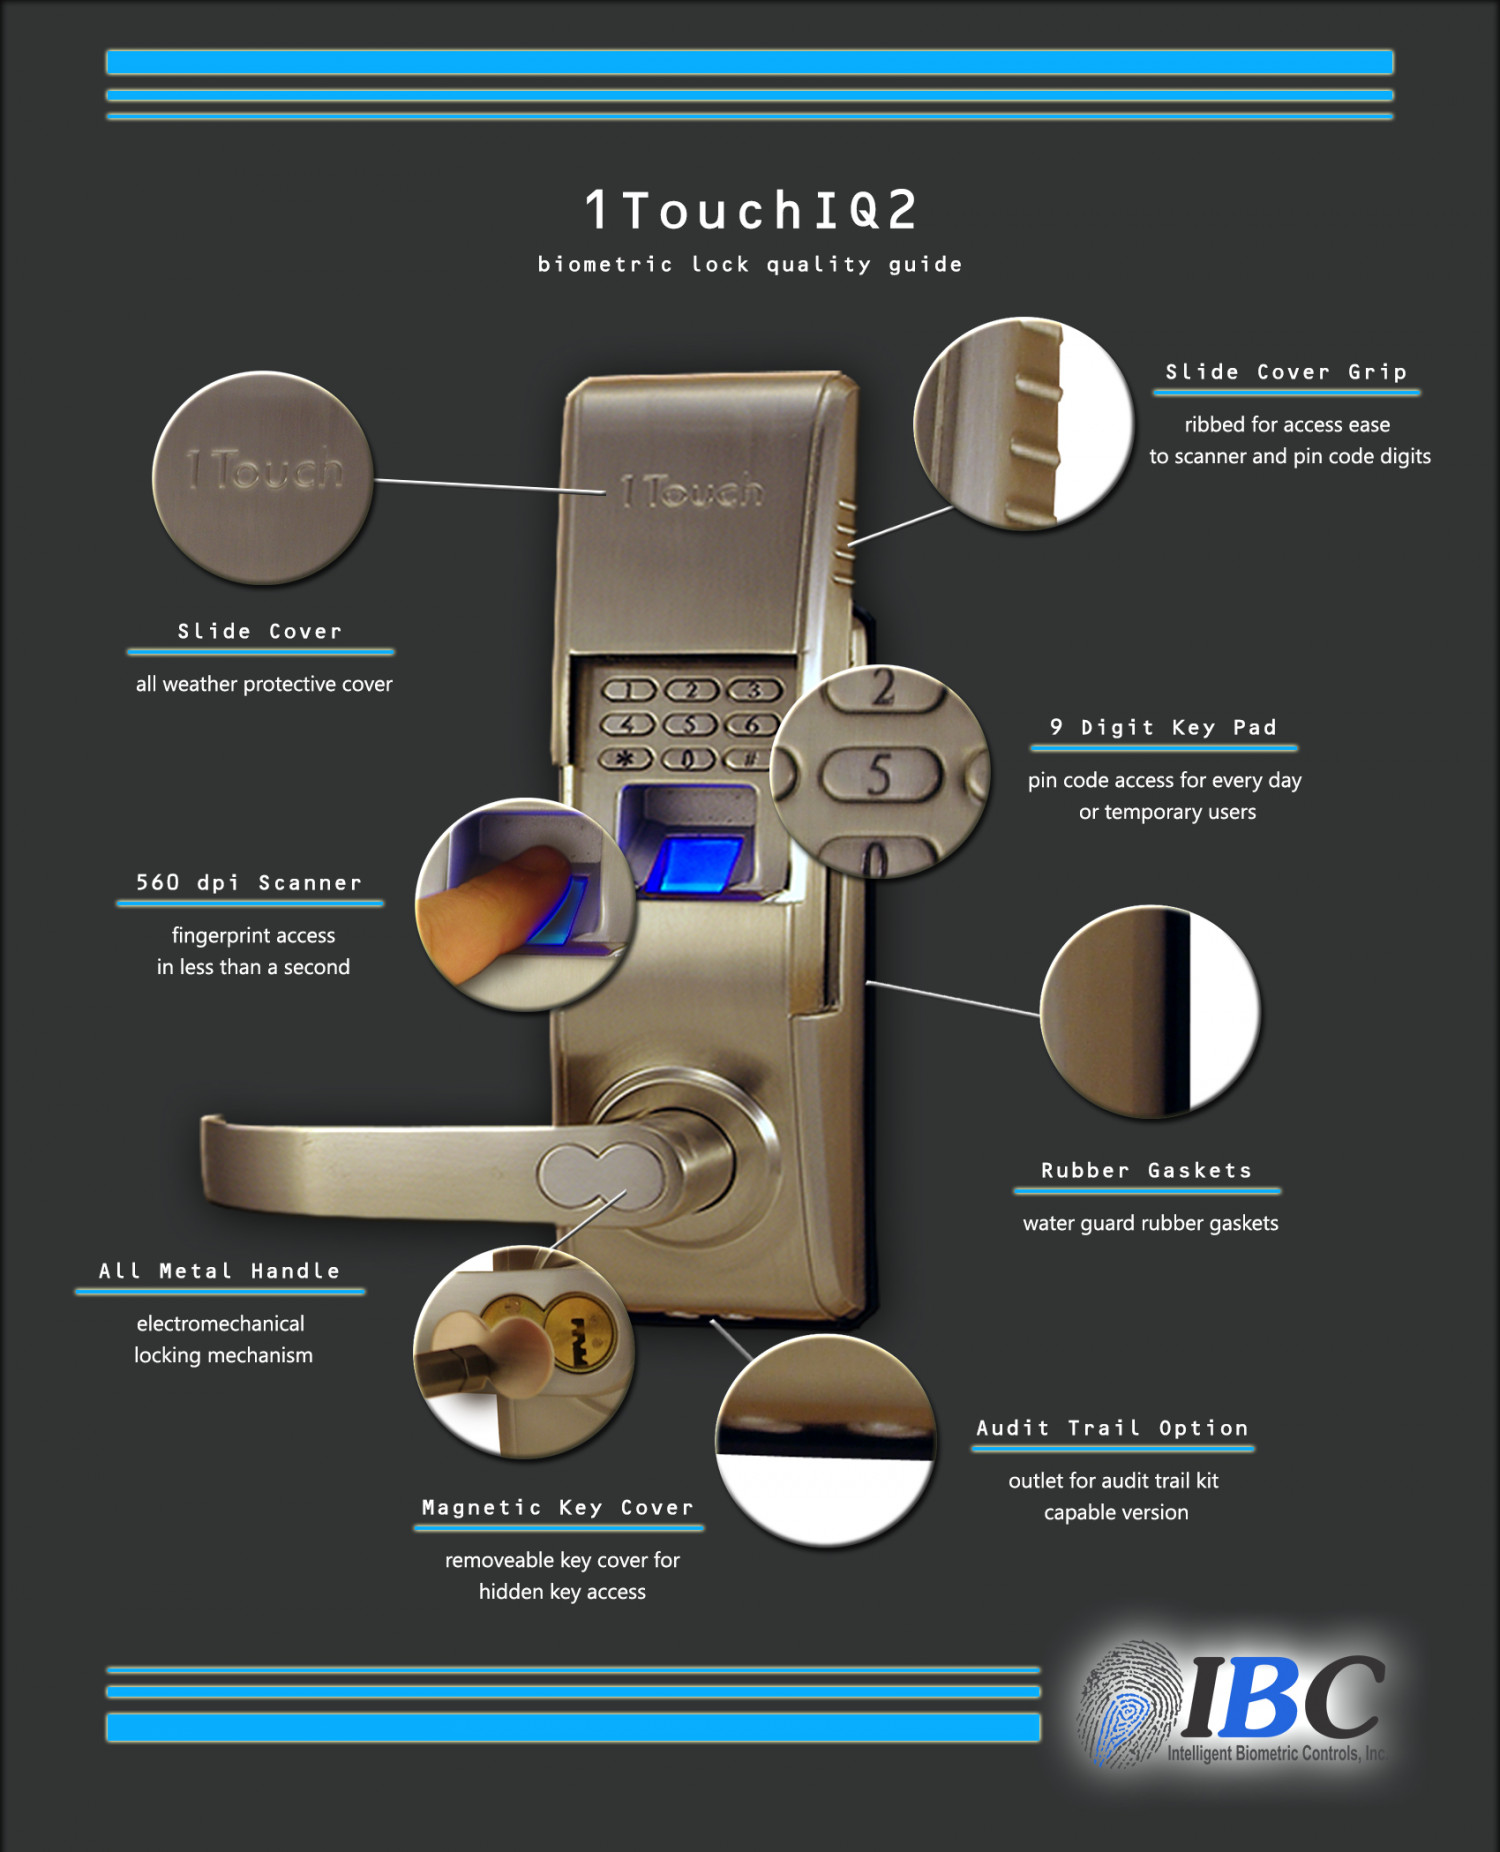 Biometric Lock Quality Guide Infographic